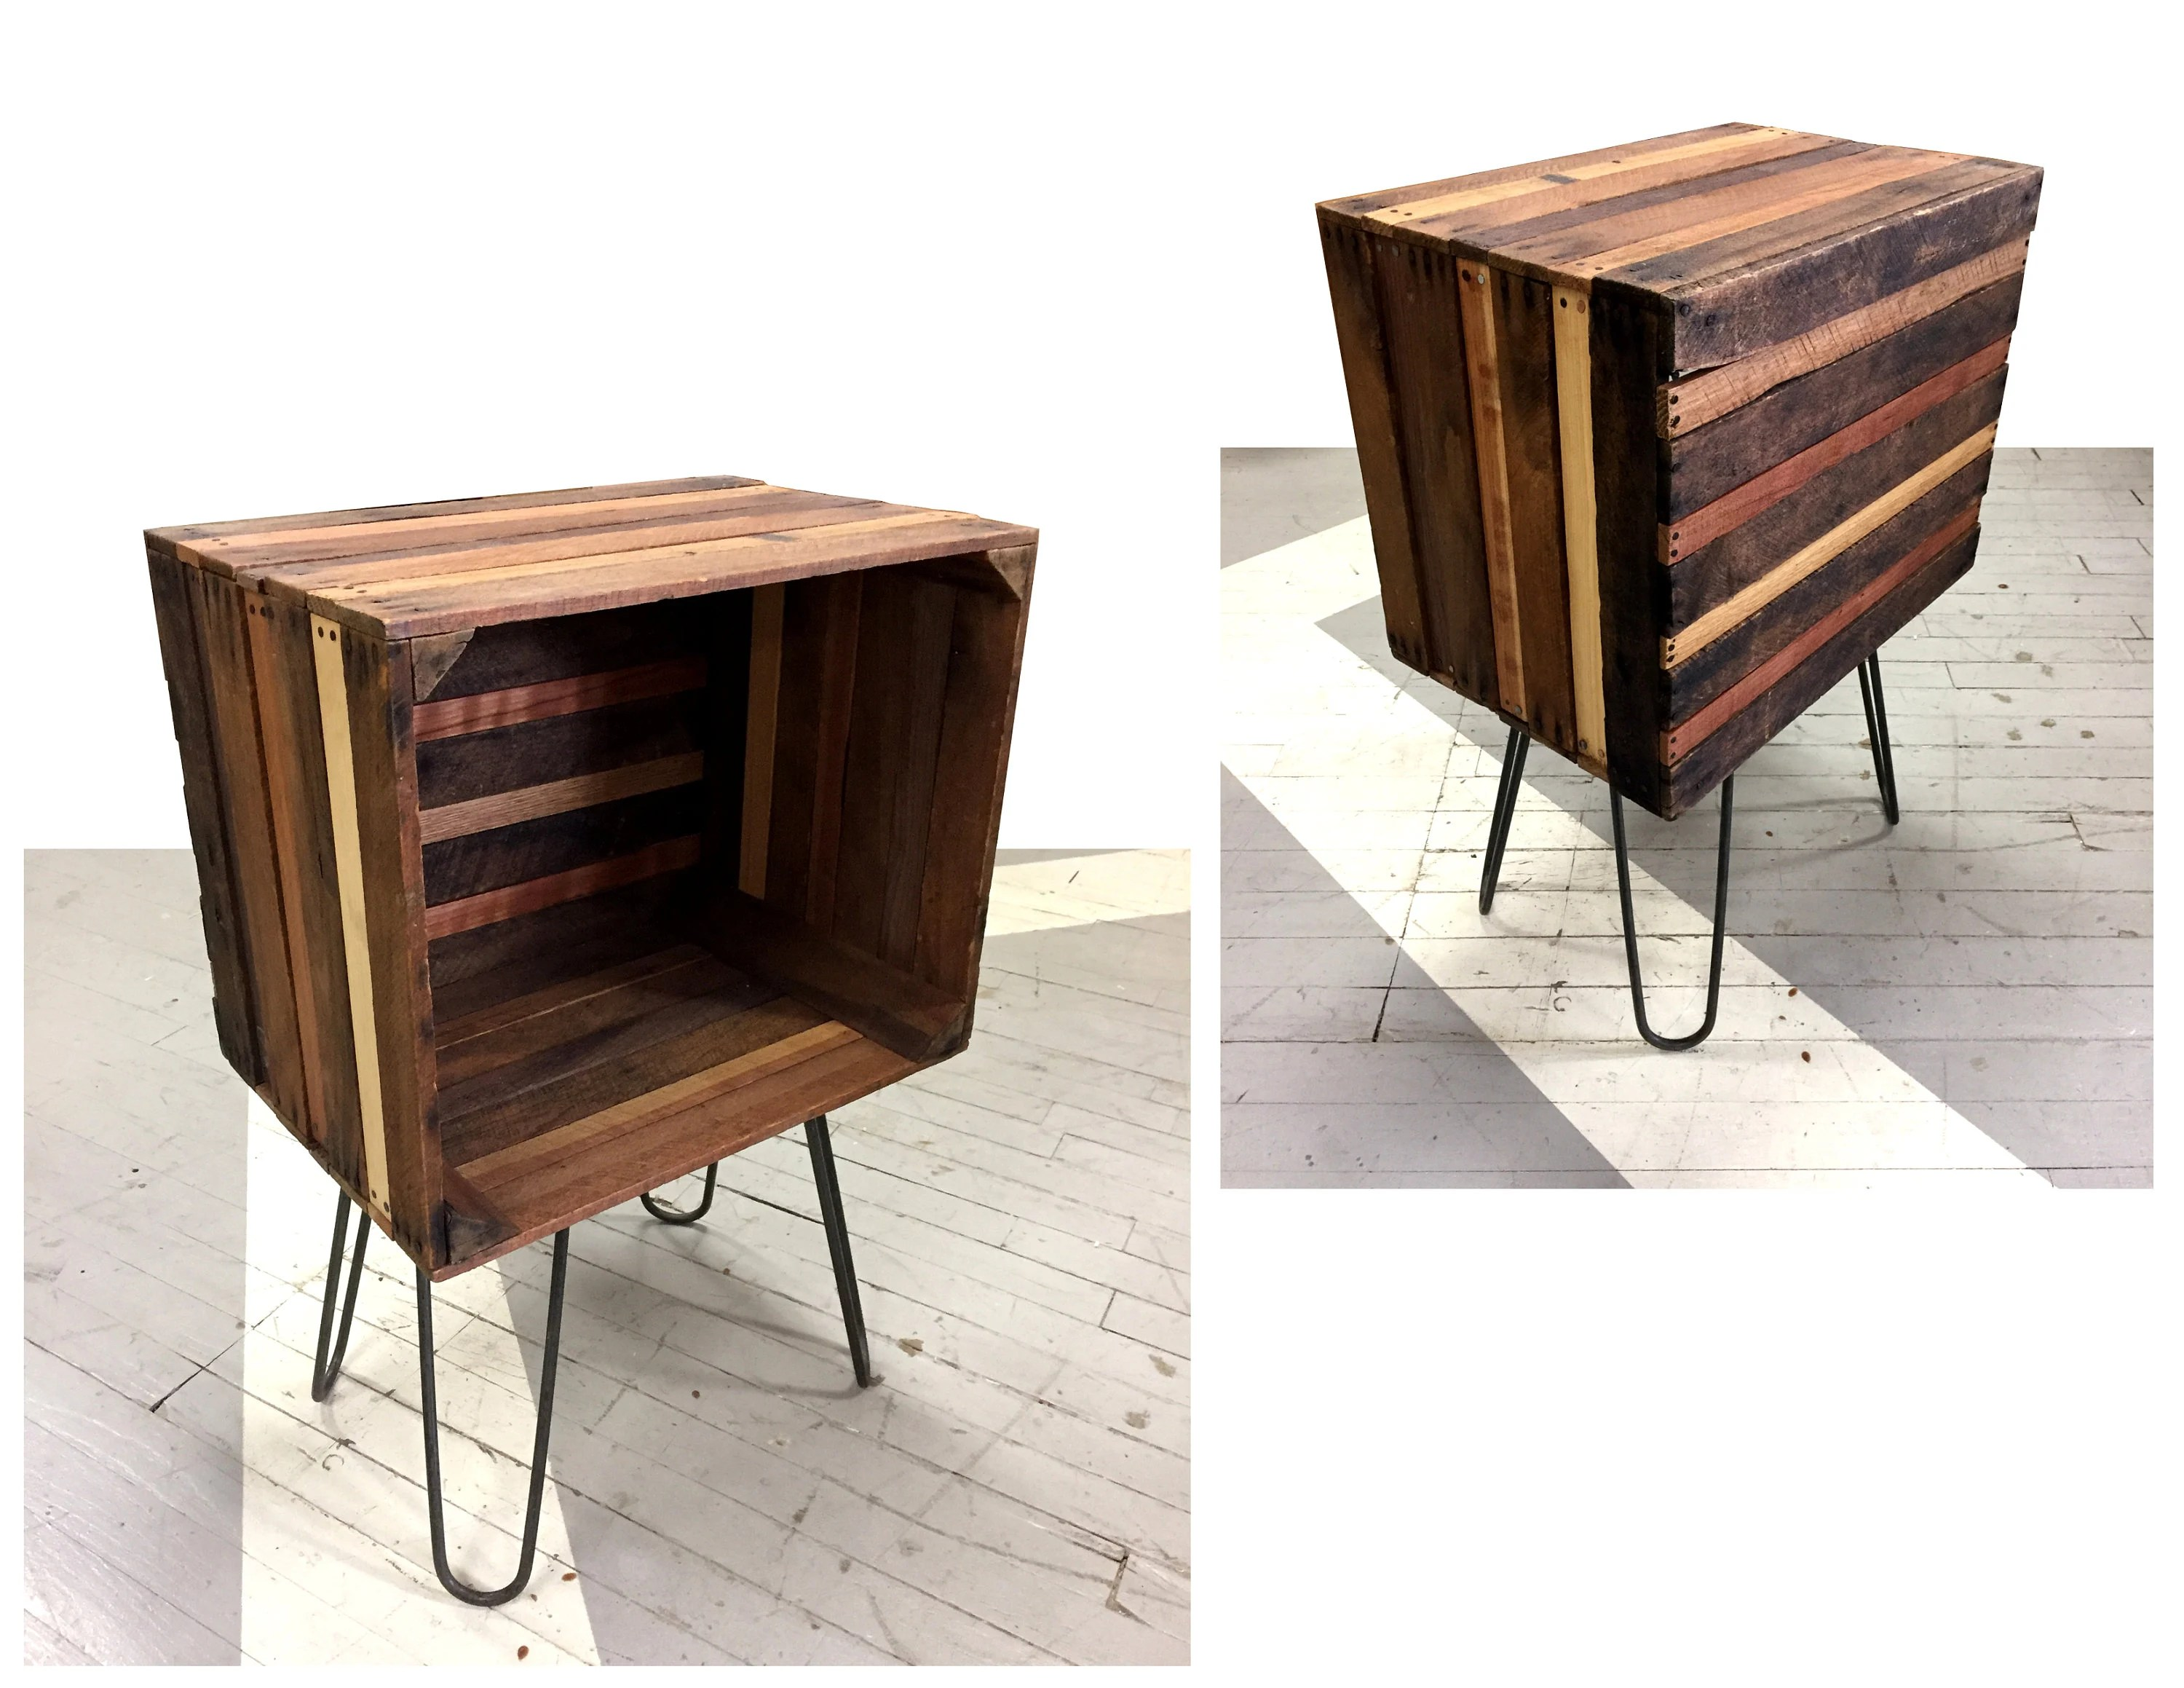 Rustic Wood End Table Rustic Wood Crate End Table Night Stand Bookshelf